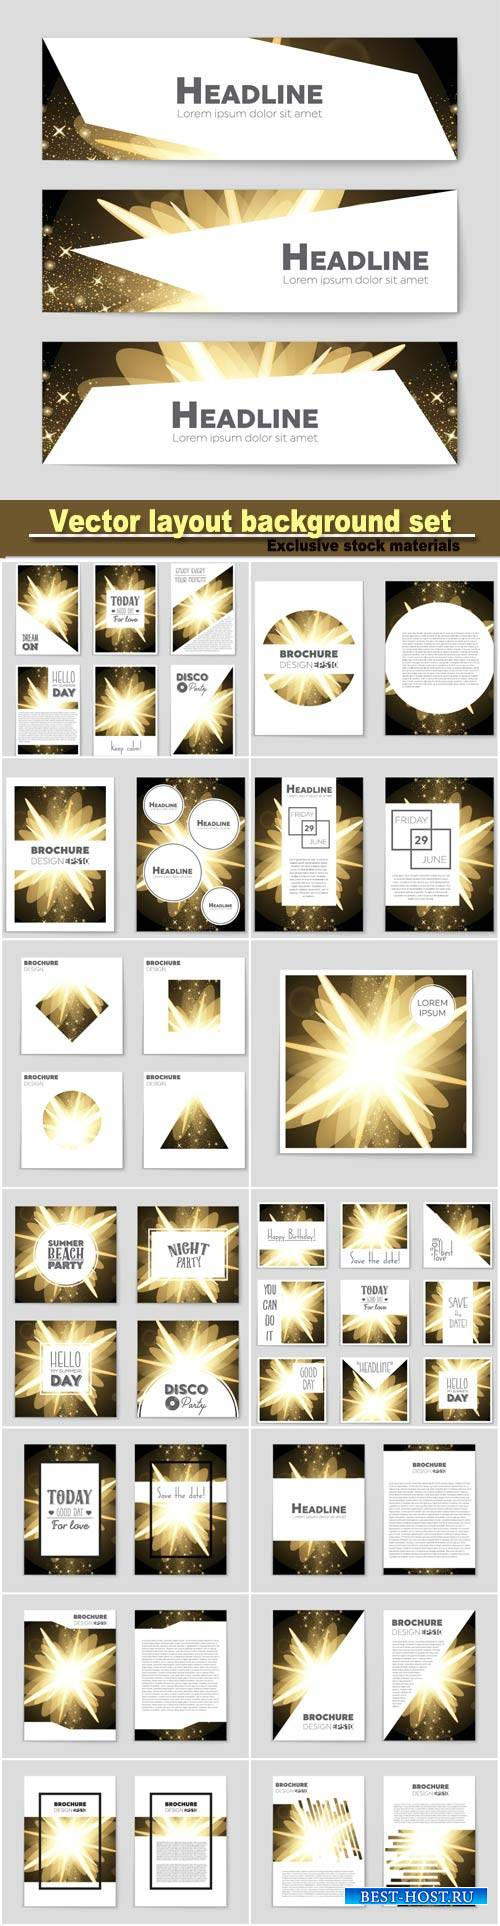 Abstract vector layout background set, mockup brochure theme style